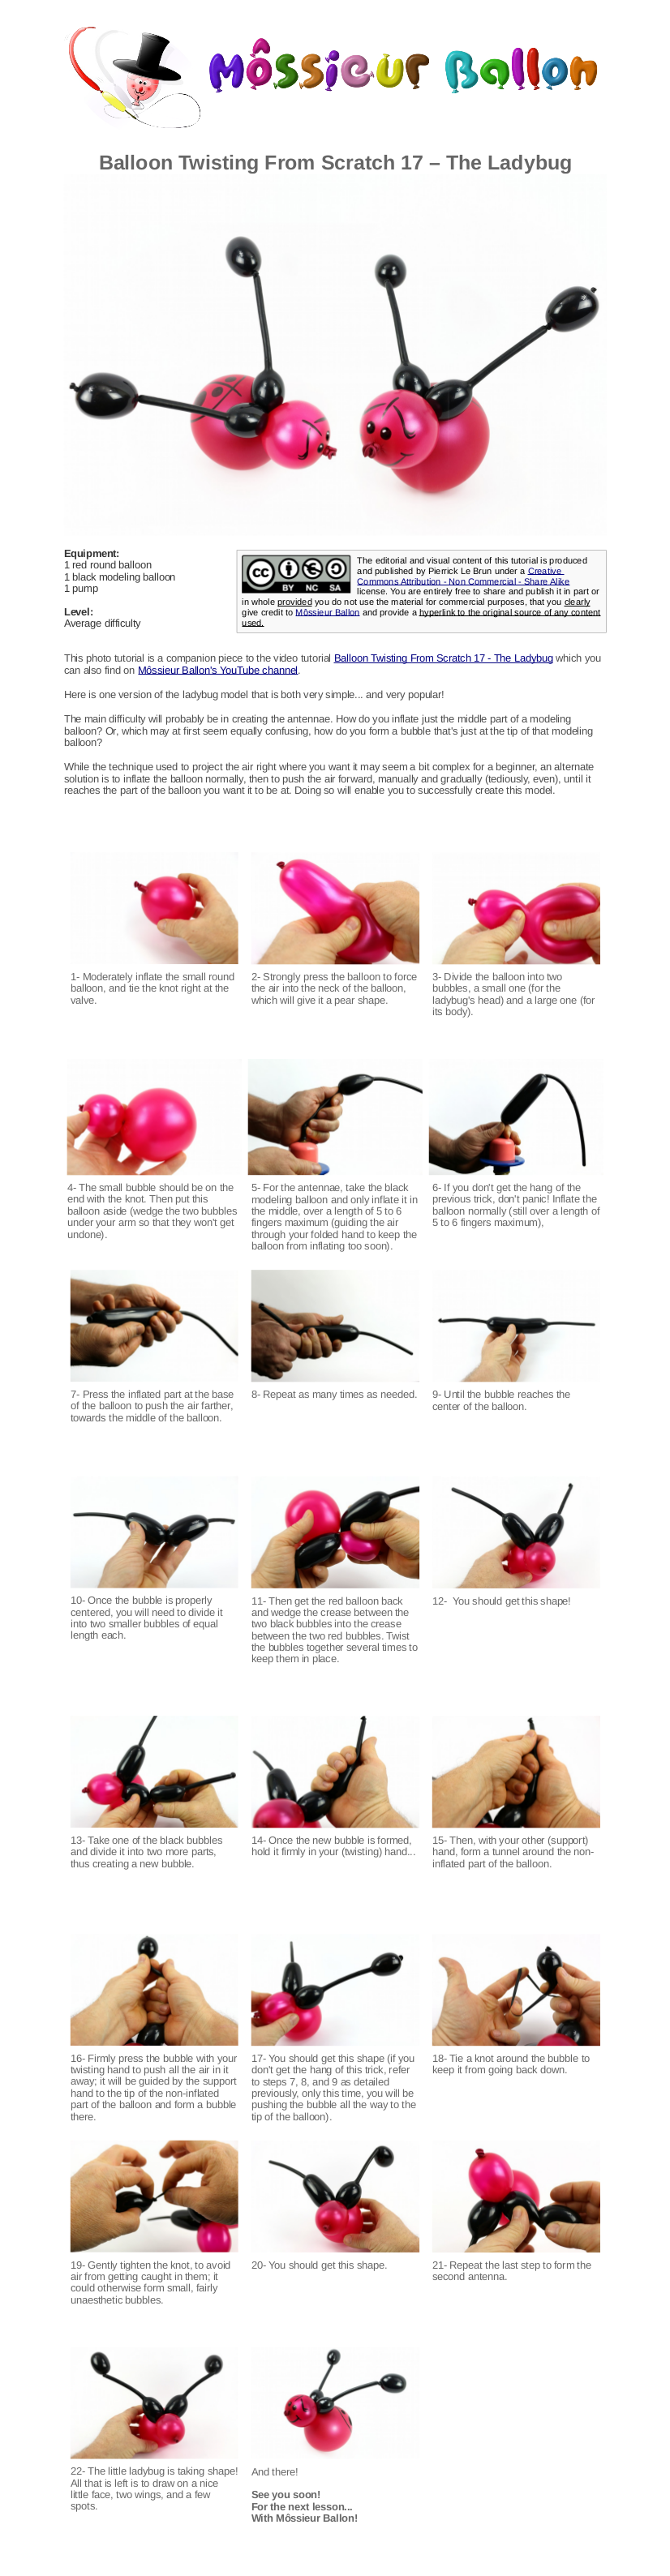 Pdf Guide Balloon Twisting From Scratch 17 The Ladybug Balloons